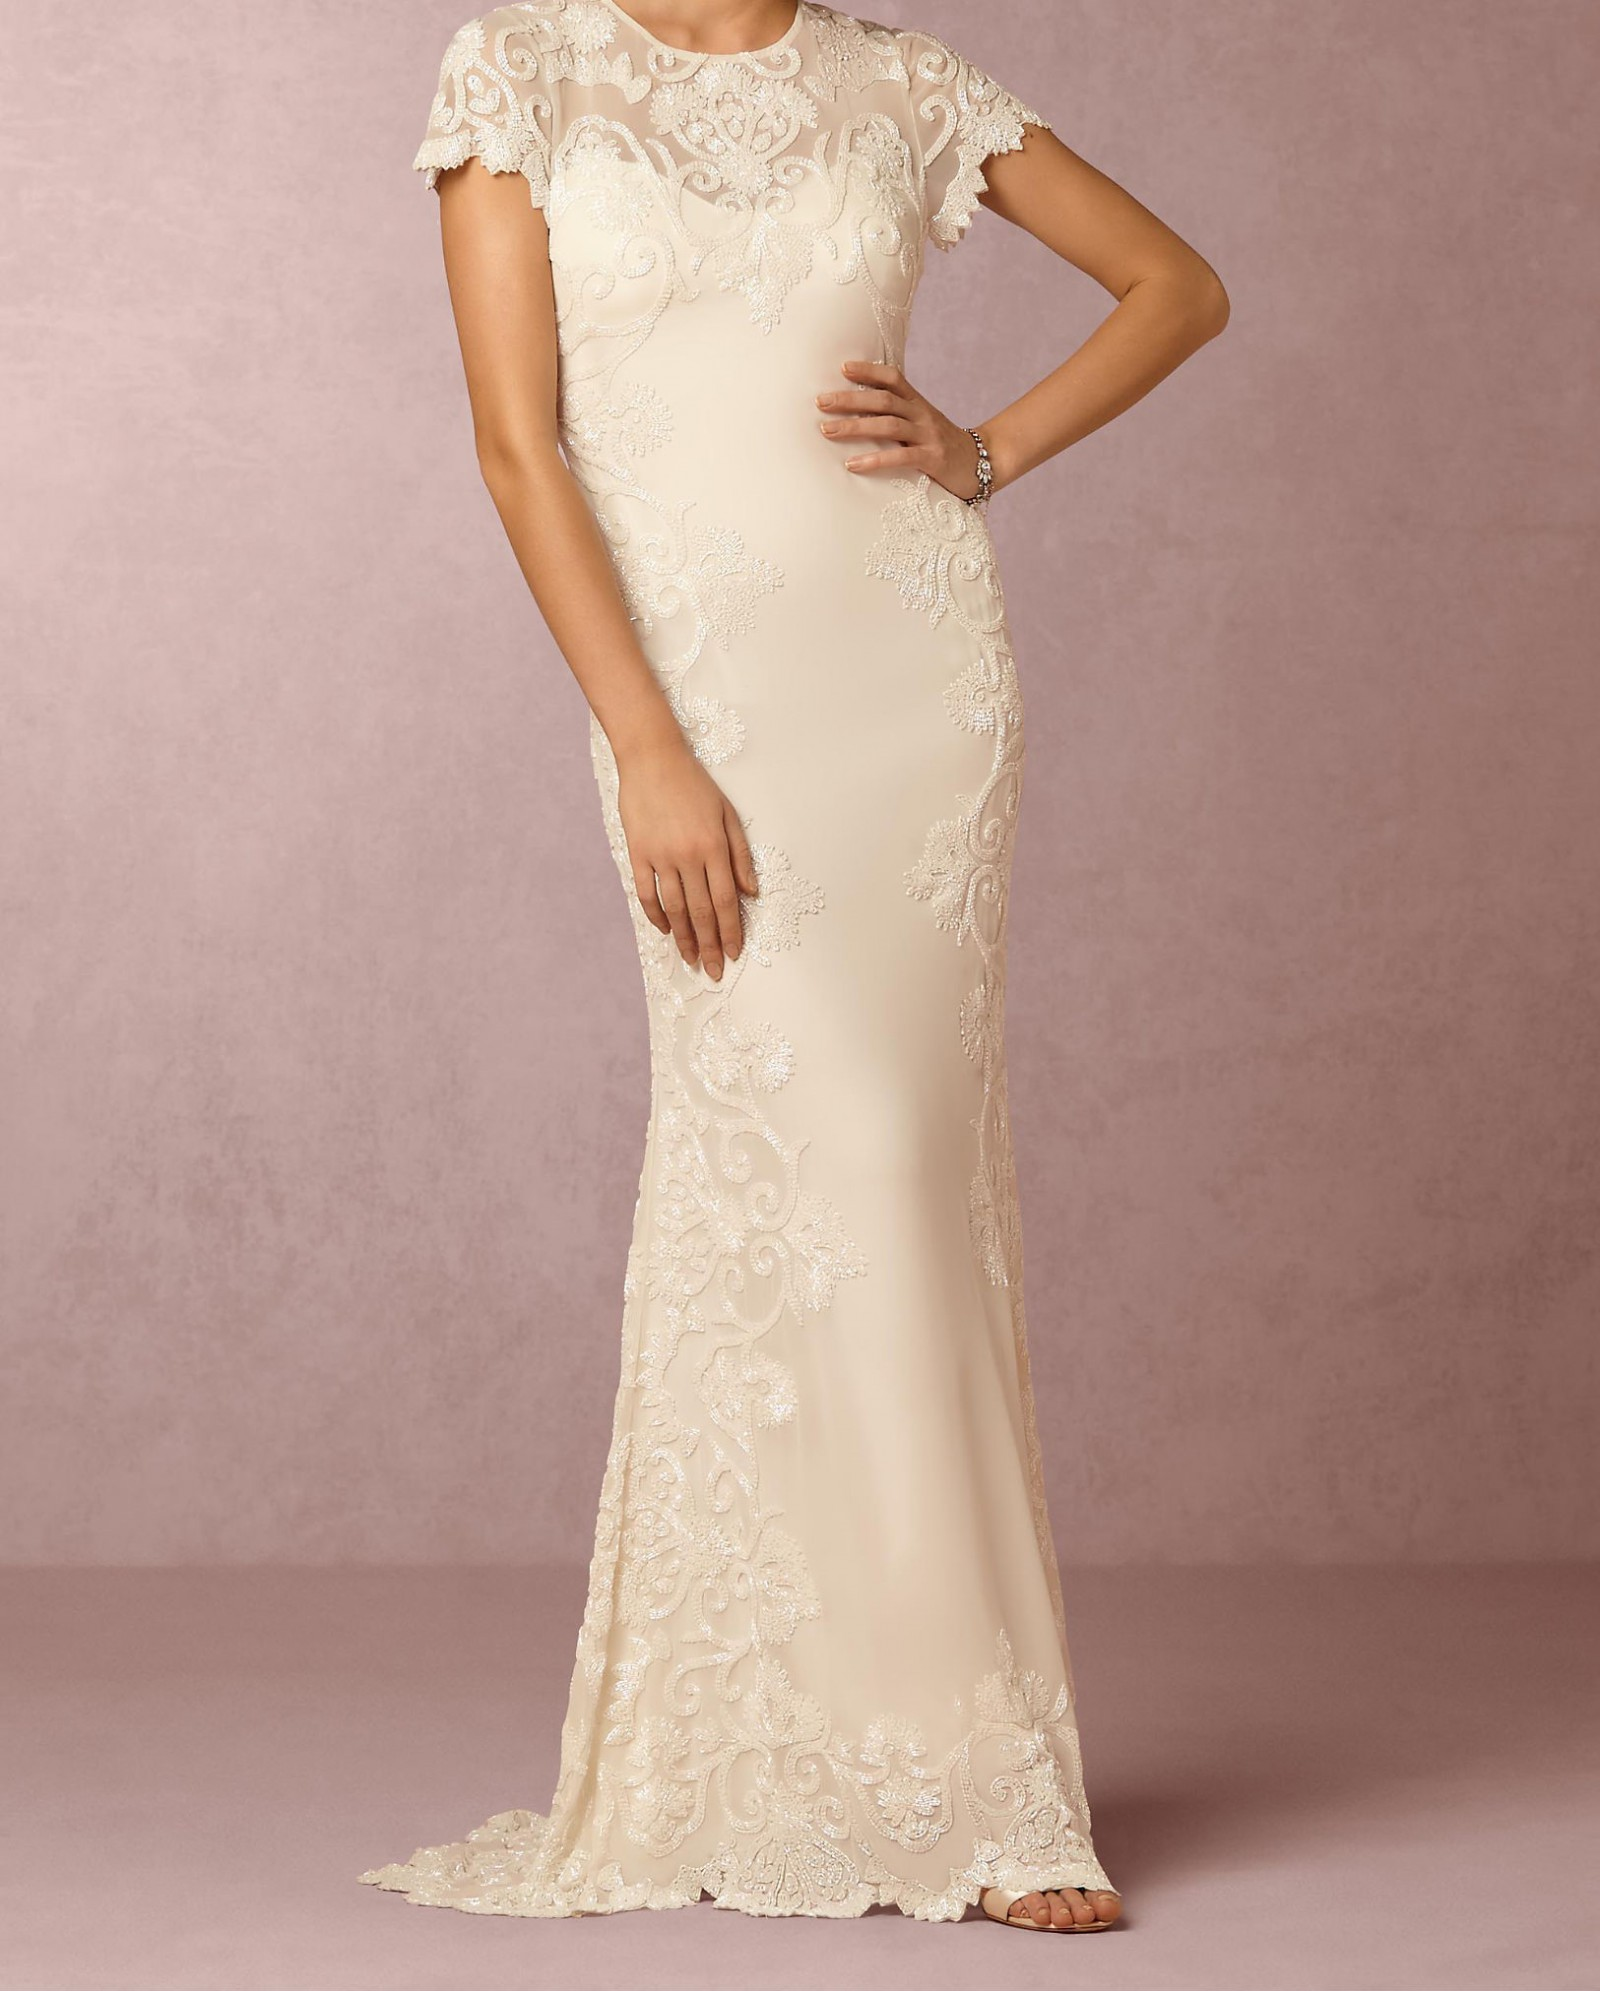 Second Hand Wedding Dresses: BHLDN Jade Gown STYLE #39007893 Second Hand Wedding Dress